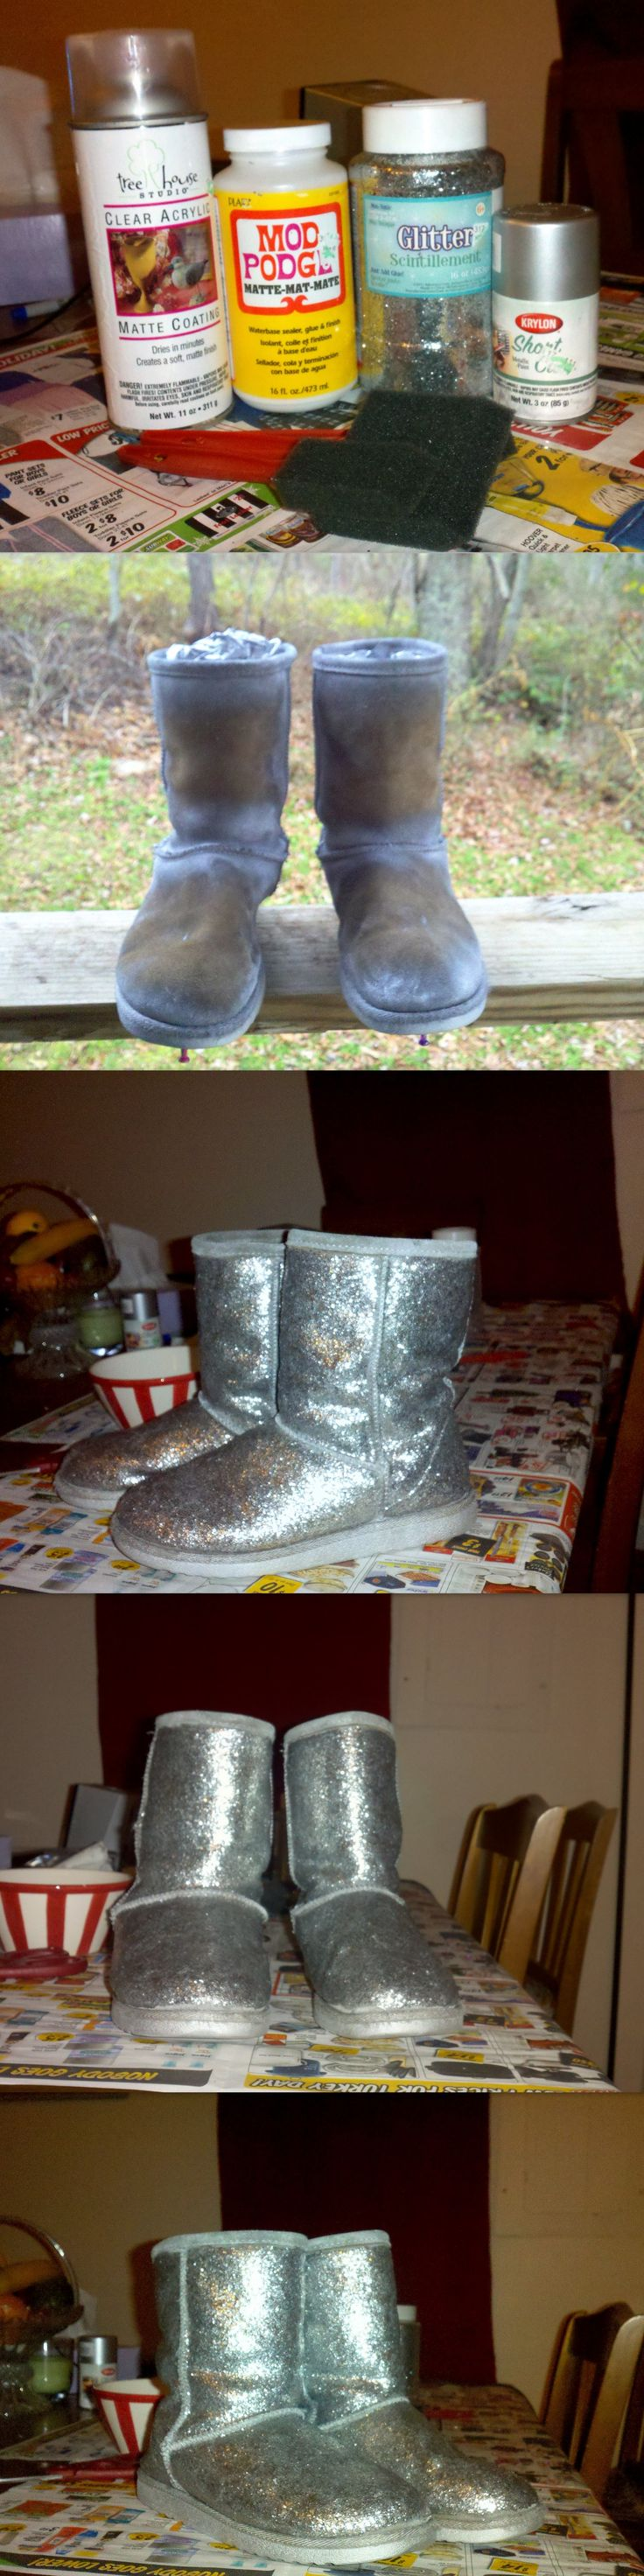 1000 ideas about spray paint shoes on pinterest how to spray paint. Black Bedroom Furniture Sets. Home Design Ideas